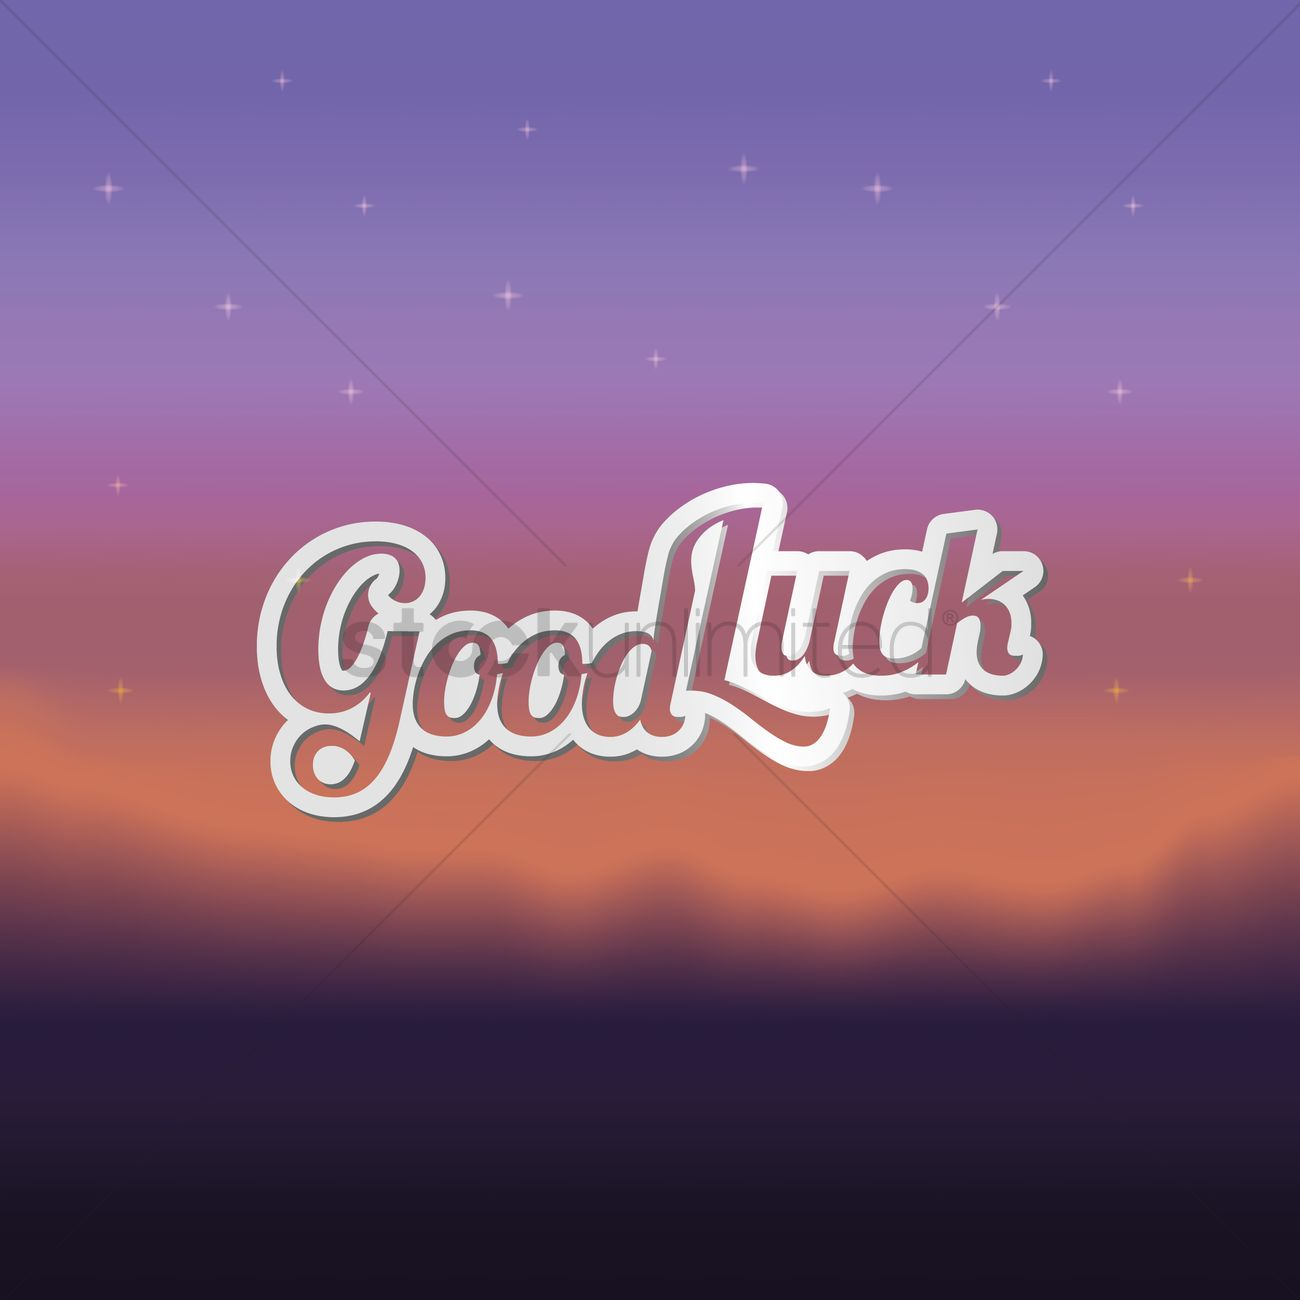 Good luck greeting vector image 1811373 stockunlimited good luck greeting vector graphic m4hsunfo